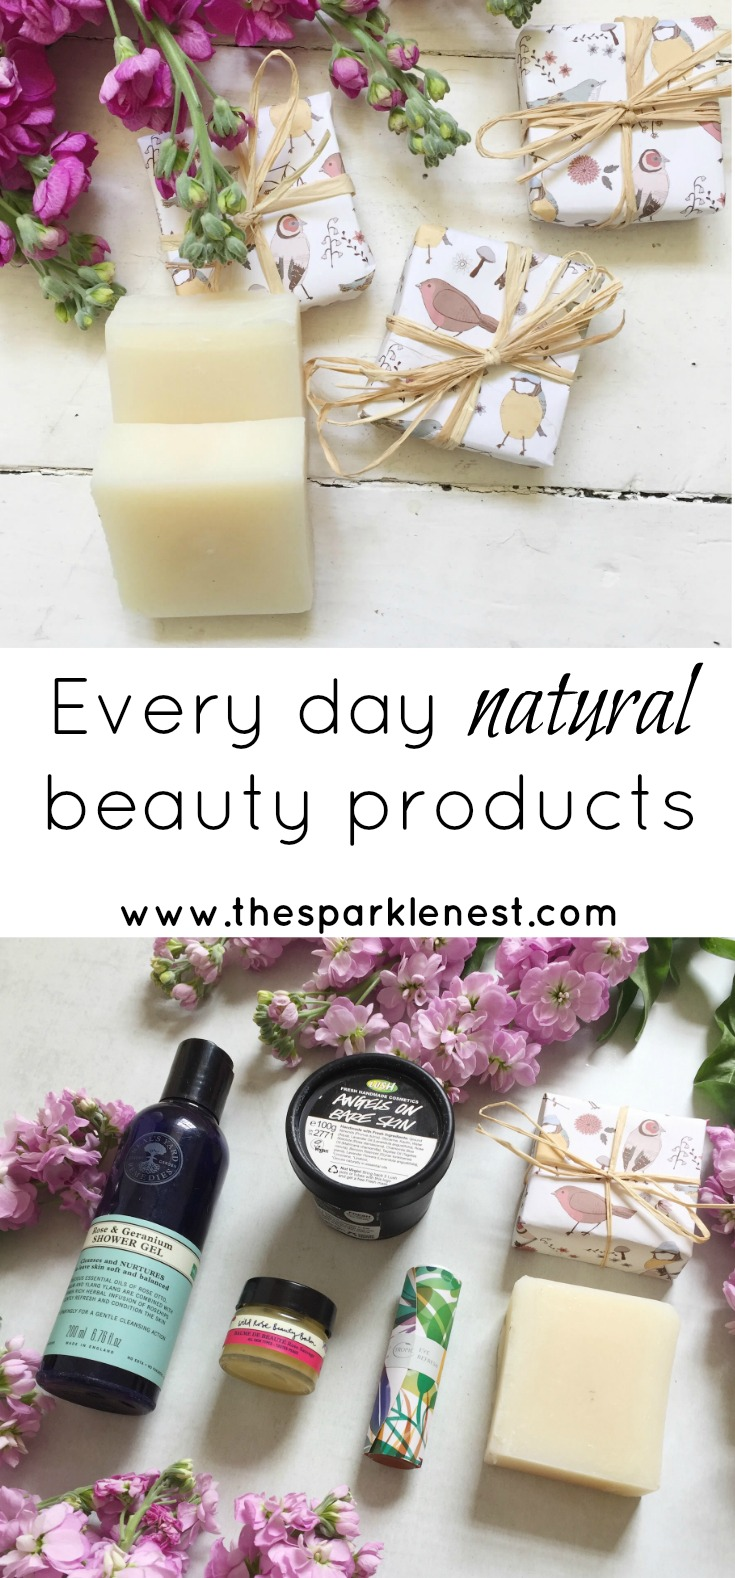 Every day natural beauty products